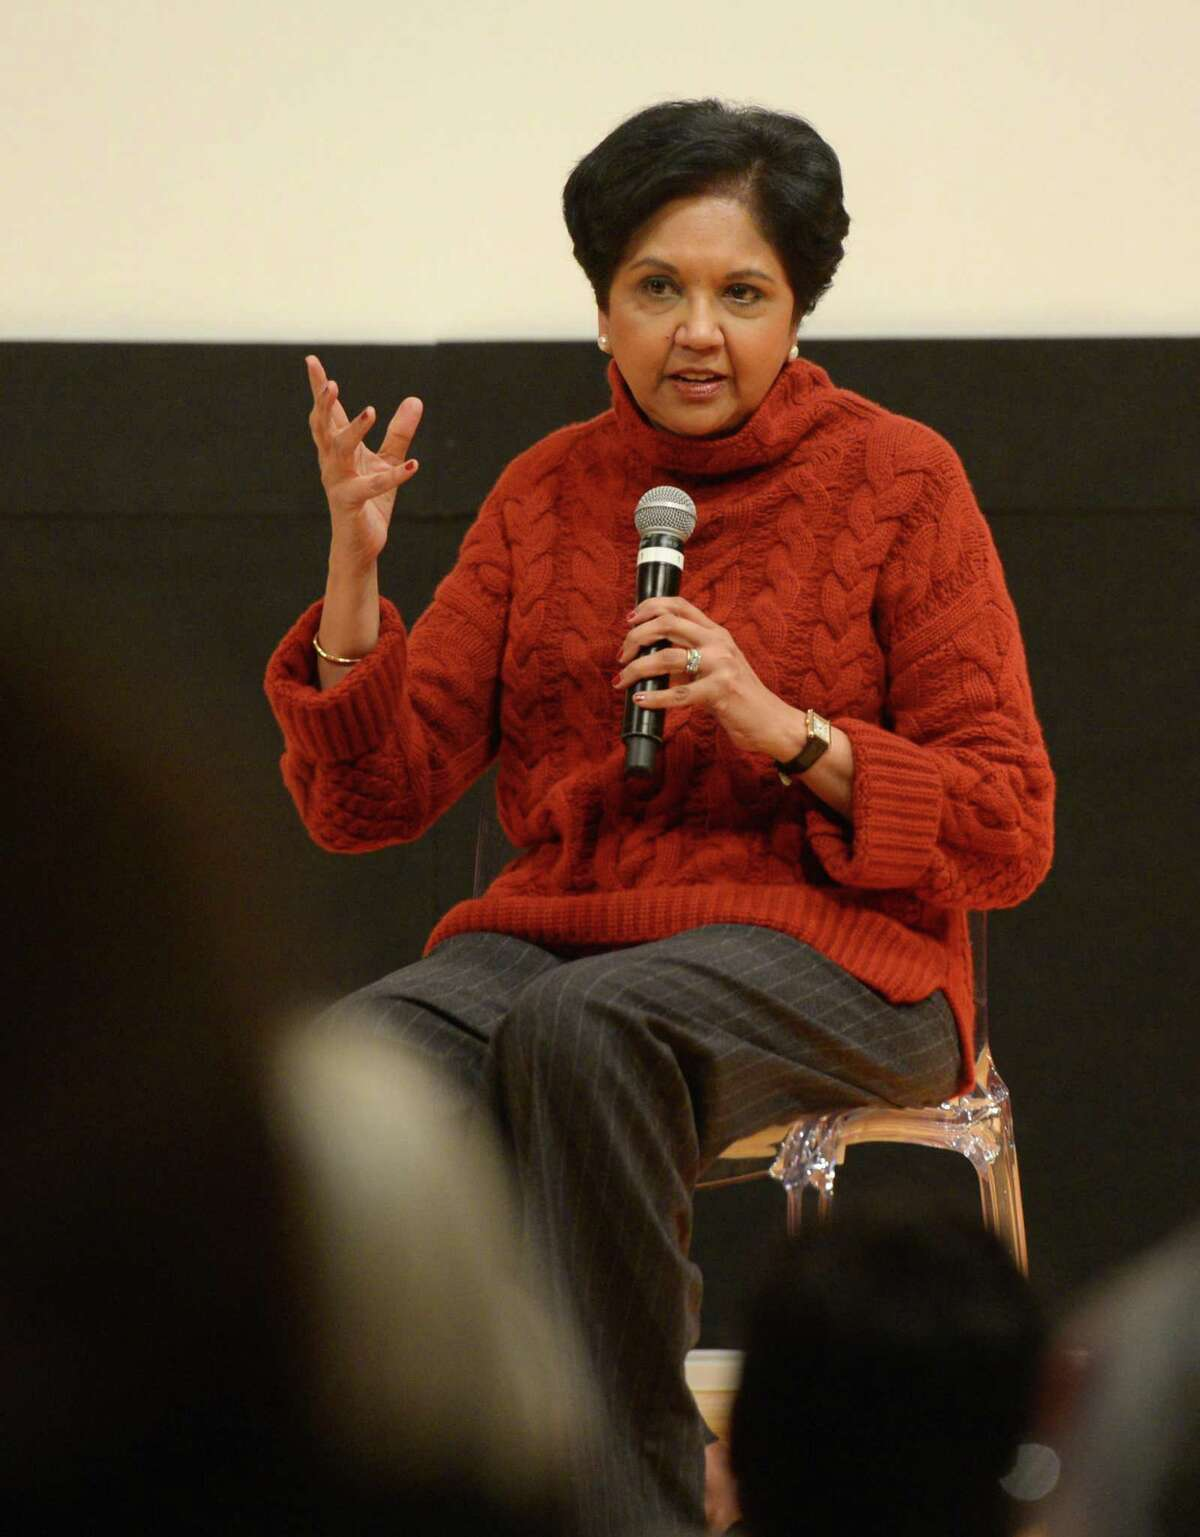 Indra Nooyi former chairman of PepsiCo, is helping to lead the state's efforts to start reopening non-essnetial businesses on May 20.